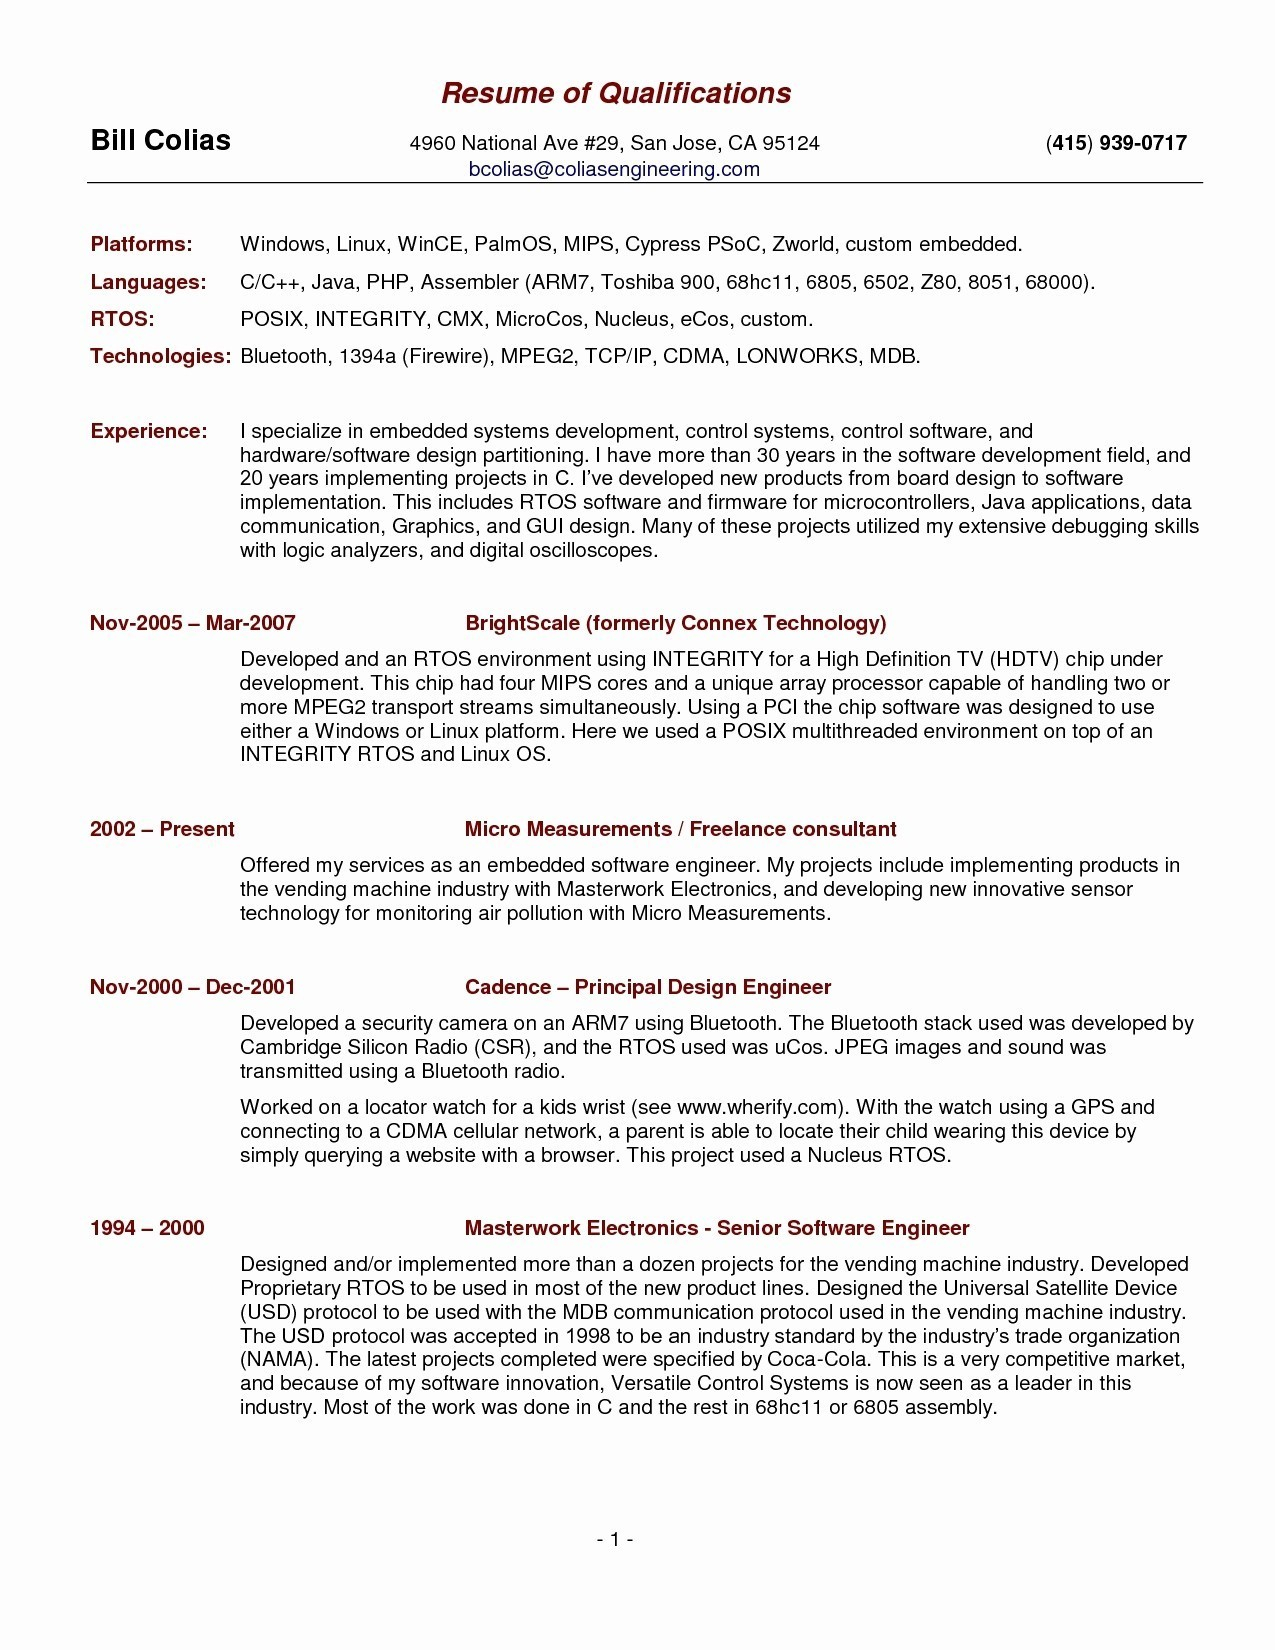 Cover Letter Graphic Design Template - android Developer Resume Luxury Graphic Design Cover Letter New